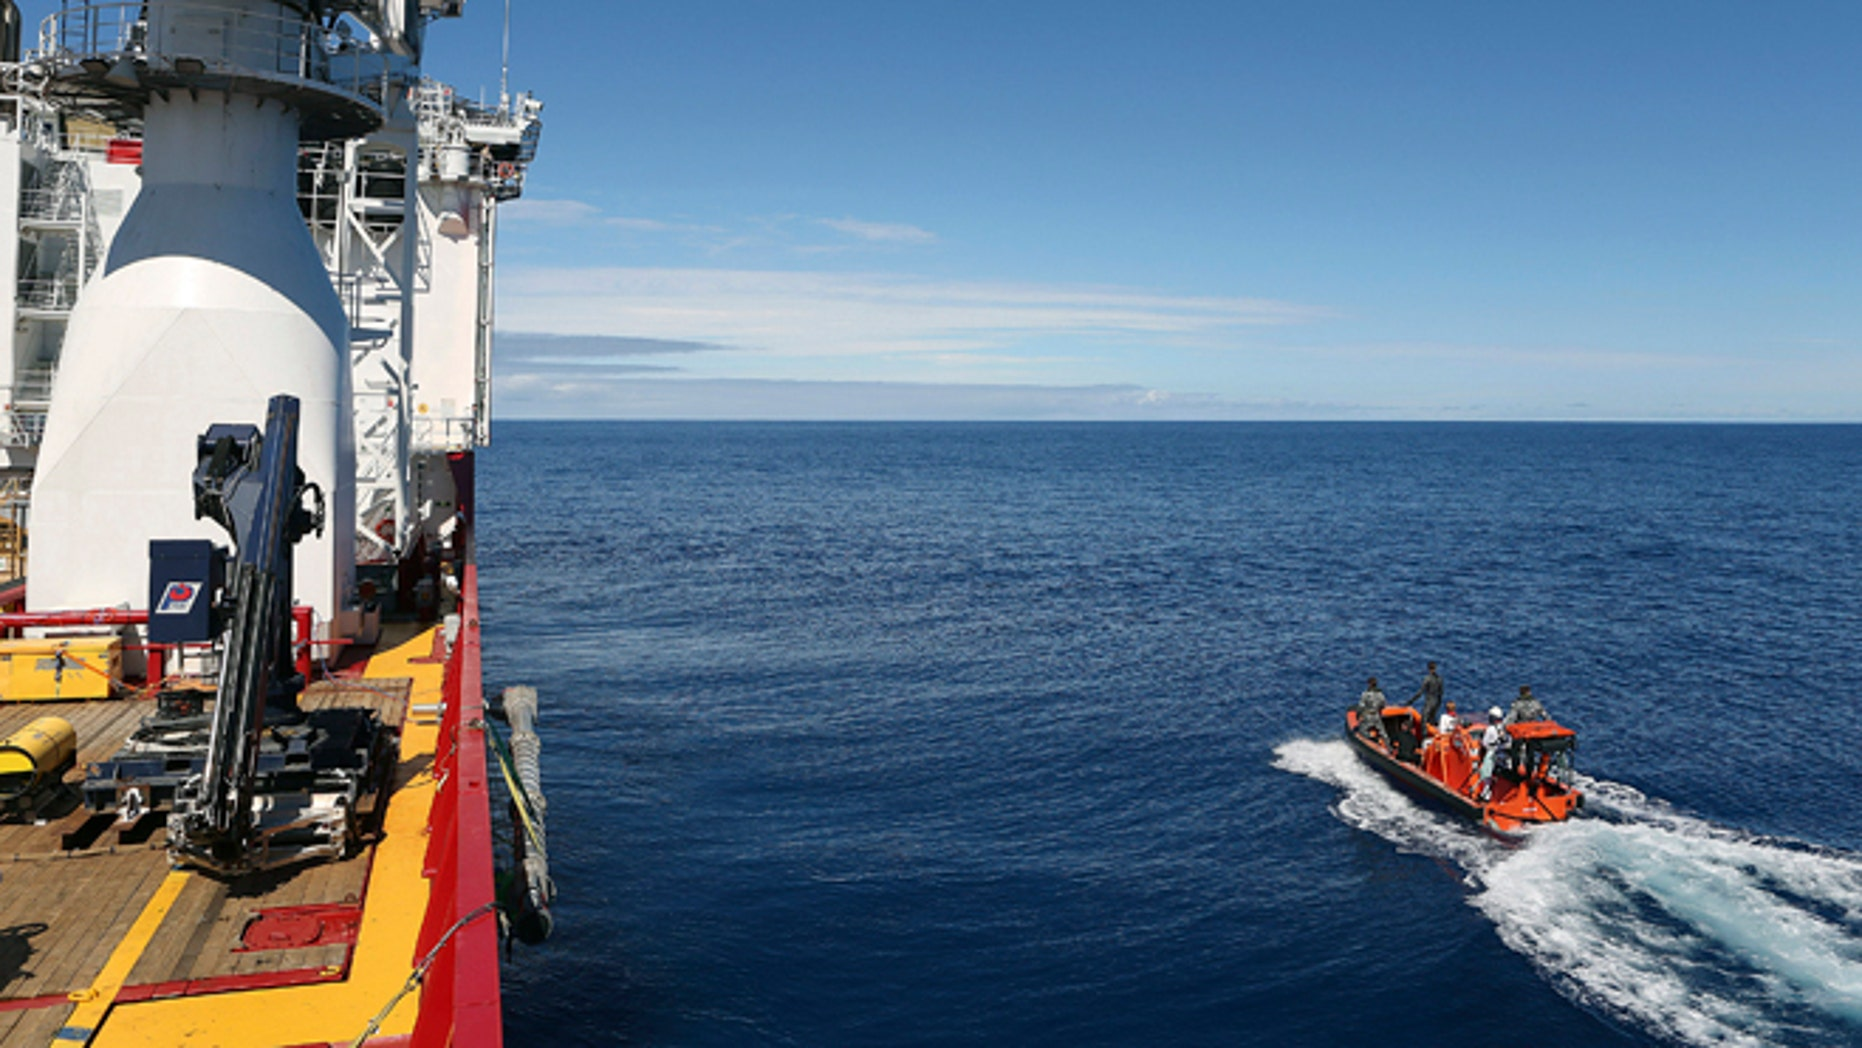 In this April 7, 2014 photo provided by the Australian Defense Force a fast response craft manned by members ofthe Australian Defense's ship Ocean Shield is deployed to scan the water for debris of the missing Malaysia Airlines Flight 370 in the southern Indian Ocean. Up to 14 planes and as many ships were focusing on a single search area covering 77, 580 square kilometers (29,954 square miles) of ocean, 2,270 kilometers (1,400 miles) northwest of the Australian west coast city of Perth, Australia. (AP Photo/Australian Defense Force, LSIS Bradley Darvill) EDITORIAL USE ONLY